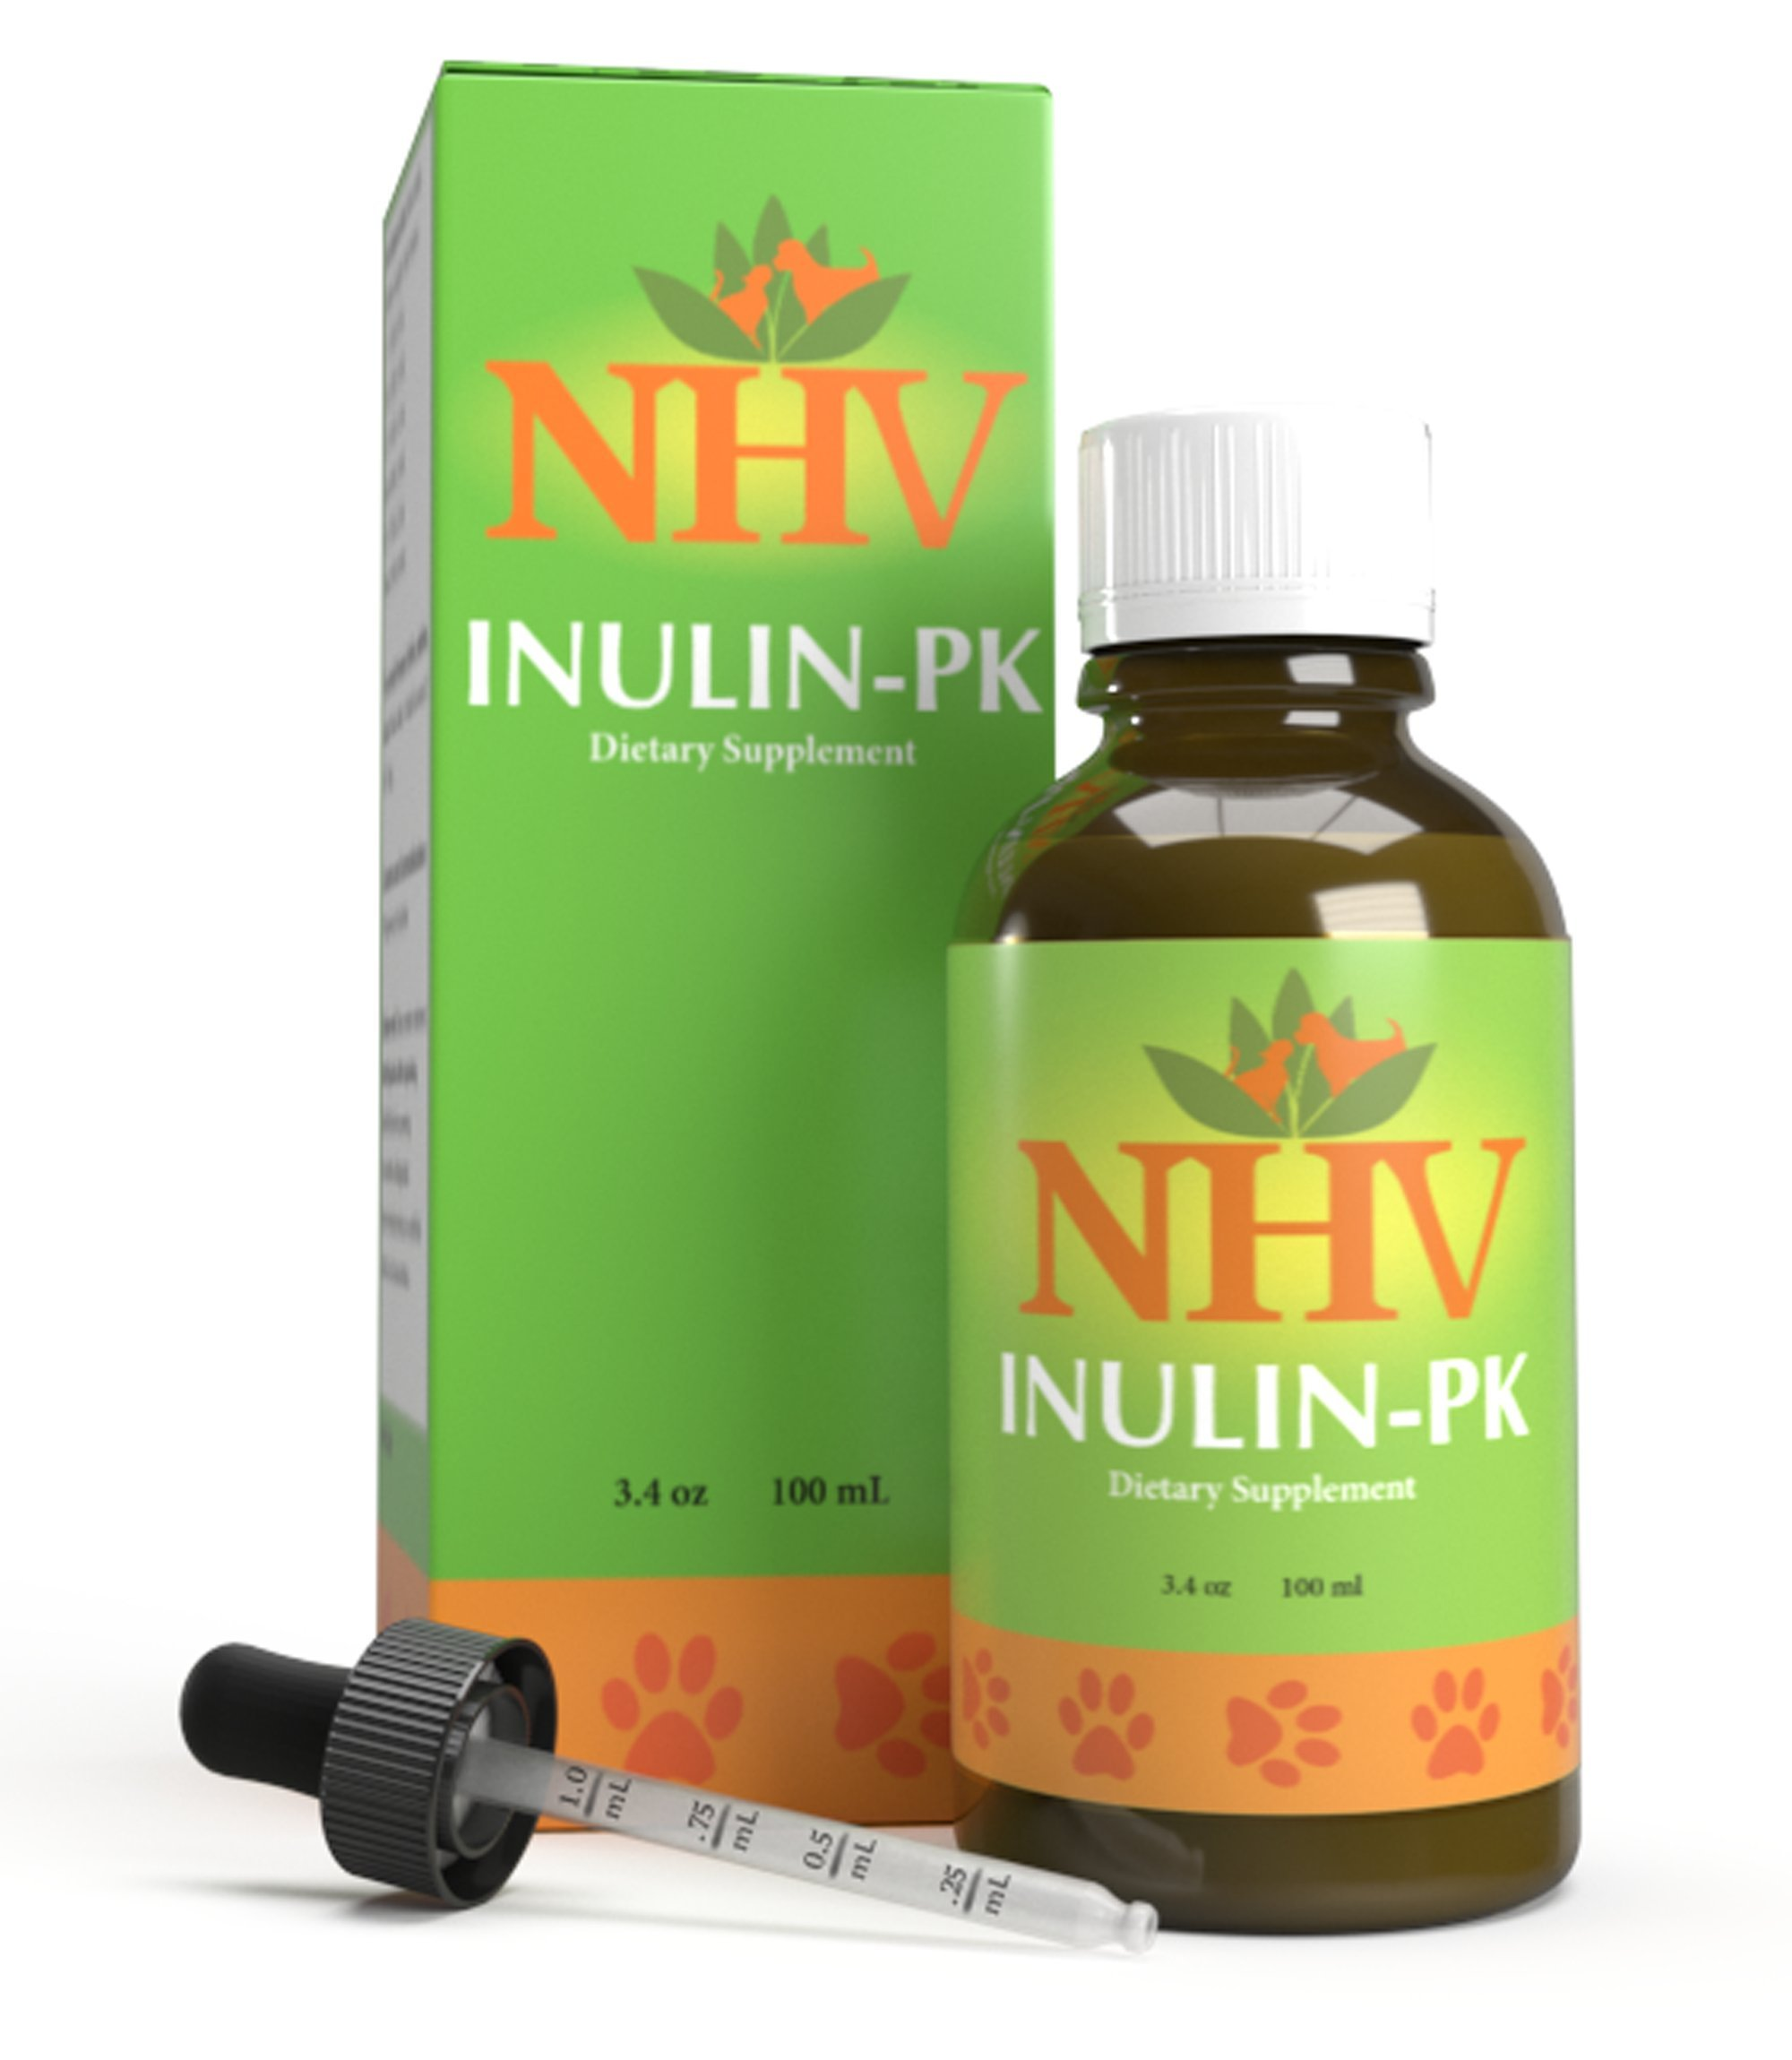 NHV Dewormer for Dogs, Cats, Puppies, Kittens. Vet Approved. All Natural. Safe & Effective by NHV